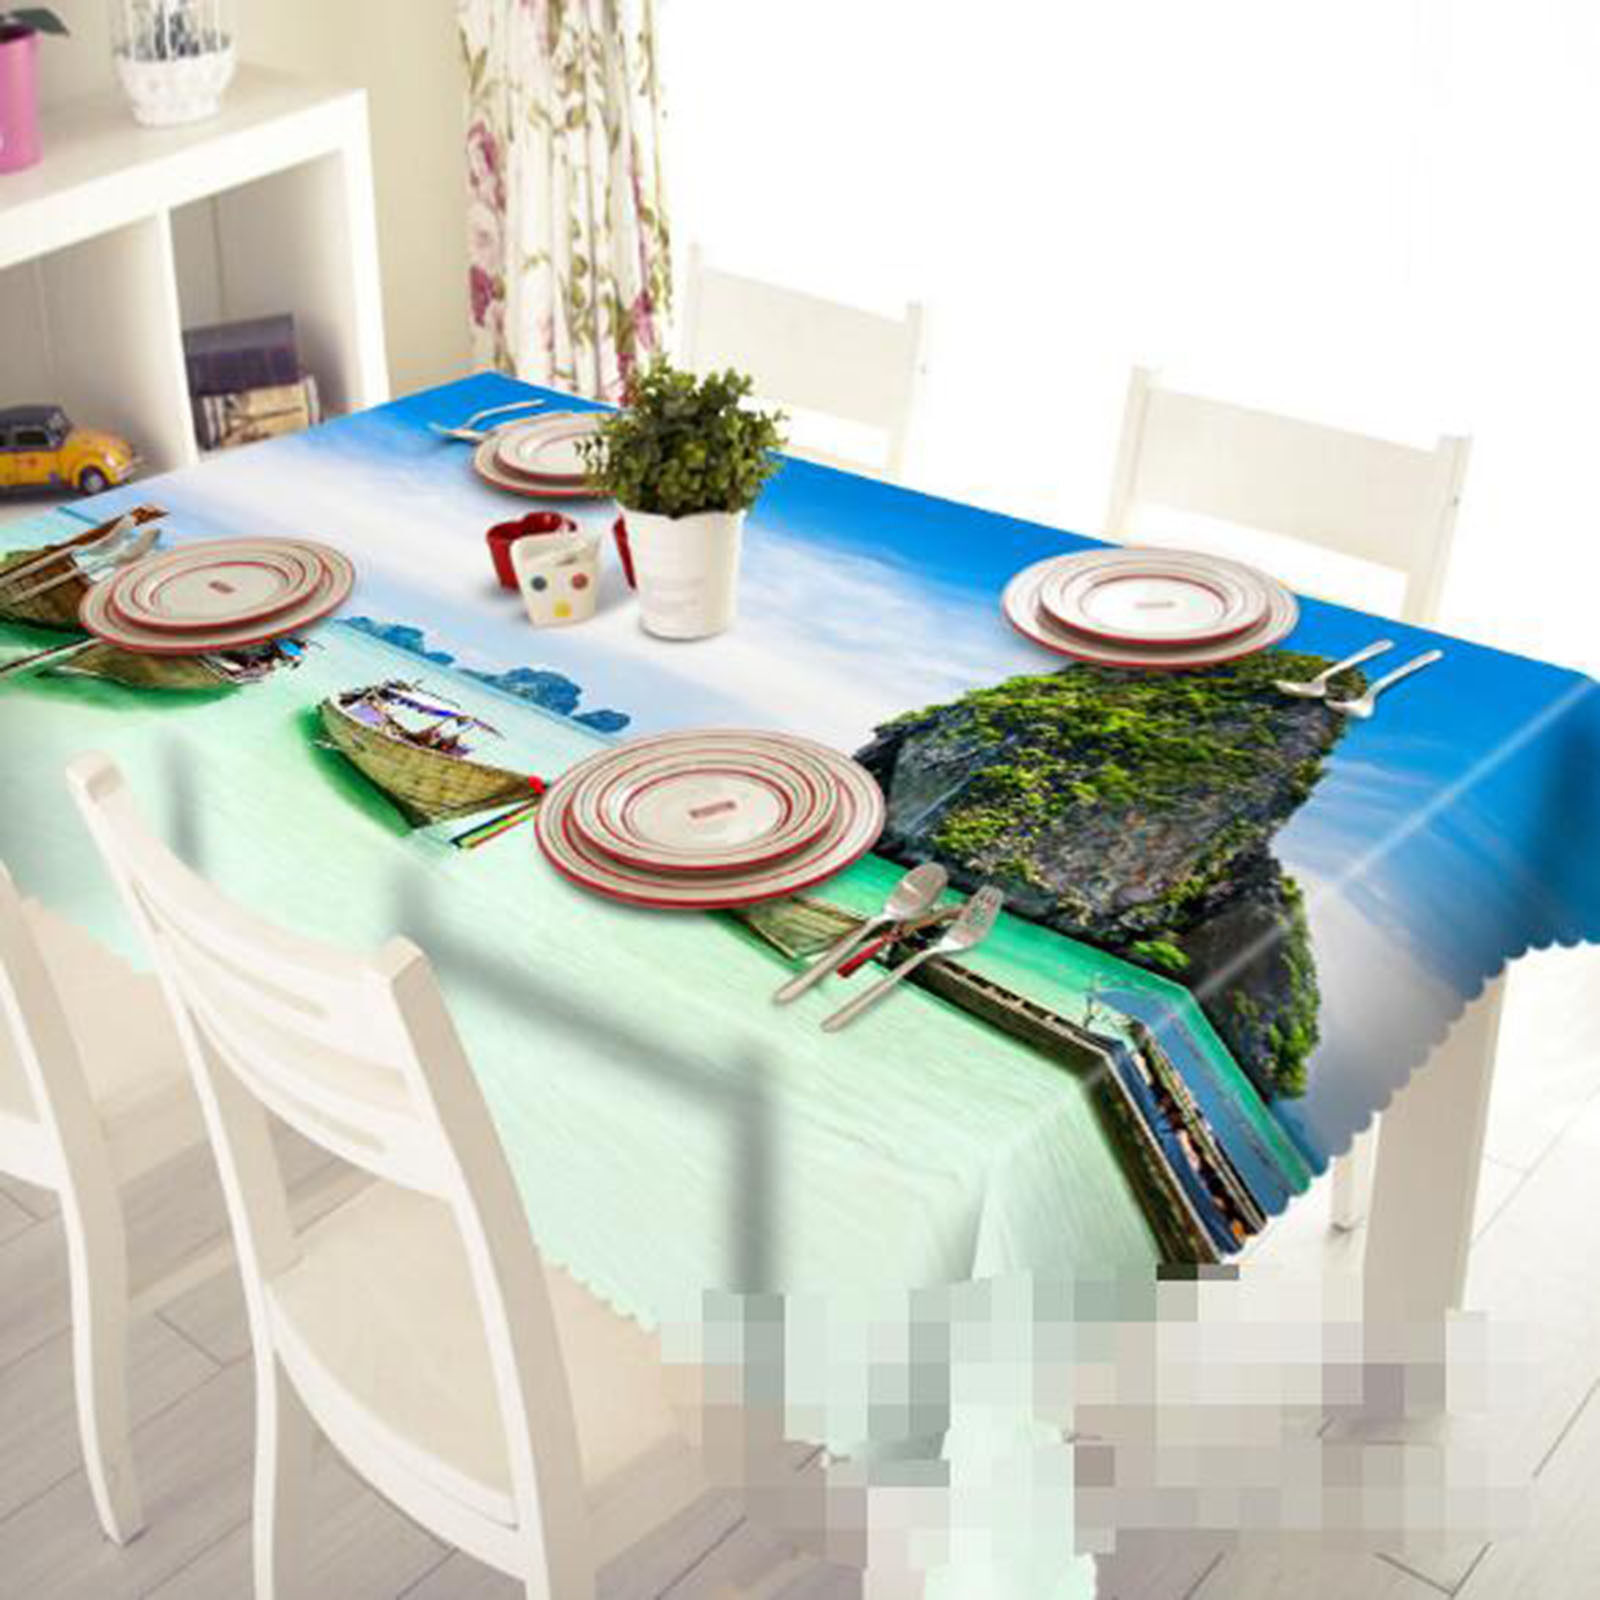 3D Ferry 62 Nappe Table Cover Cloth fête d'anniversaire AJ papier peint Royaume-Uni Citron